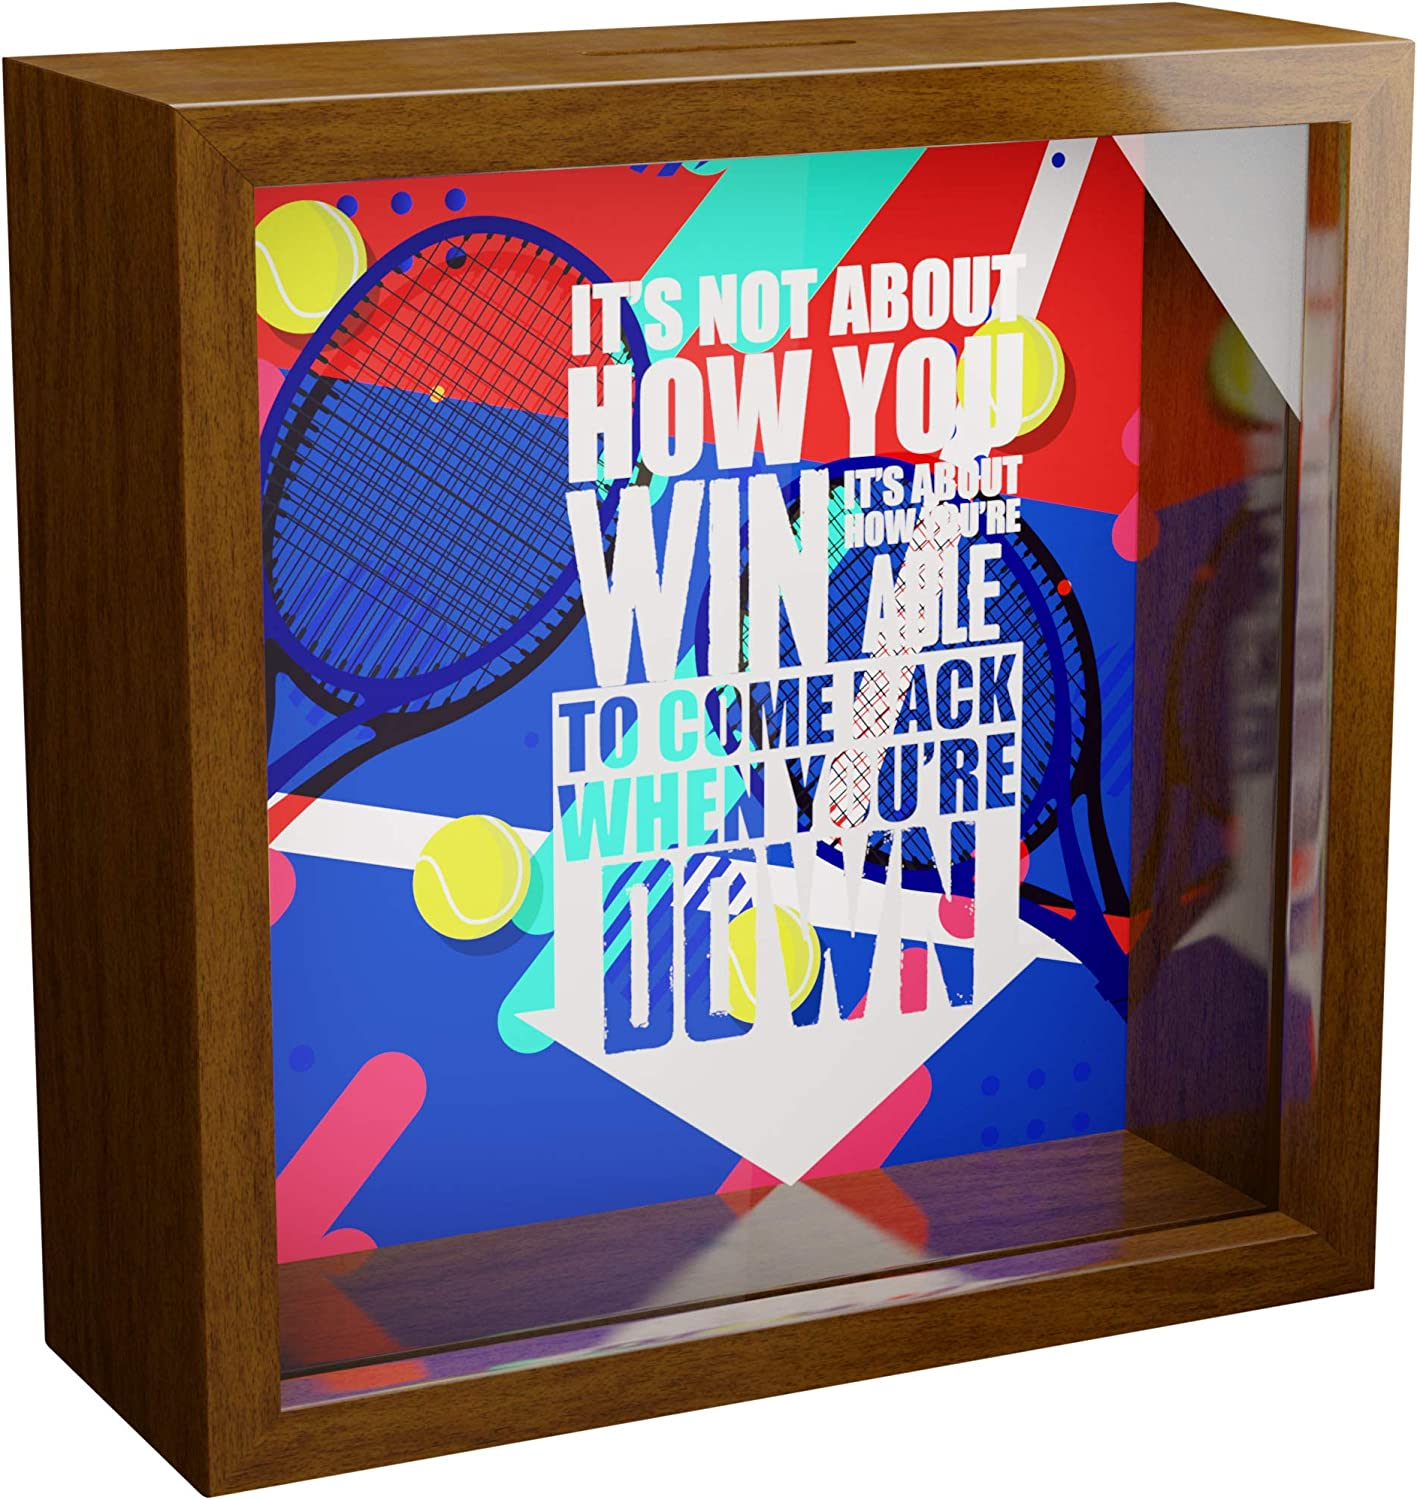 Tennis Wall Decor Gifts   6x6x2 Memorabilia Shadow Box with Glass Front   Wooden Memory Box Ideal for Tennis Lovers   Themed Keepsake for Players or Coach for Men and Women